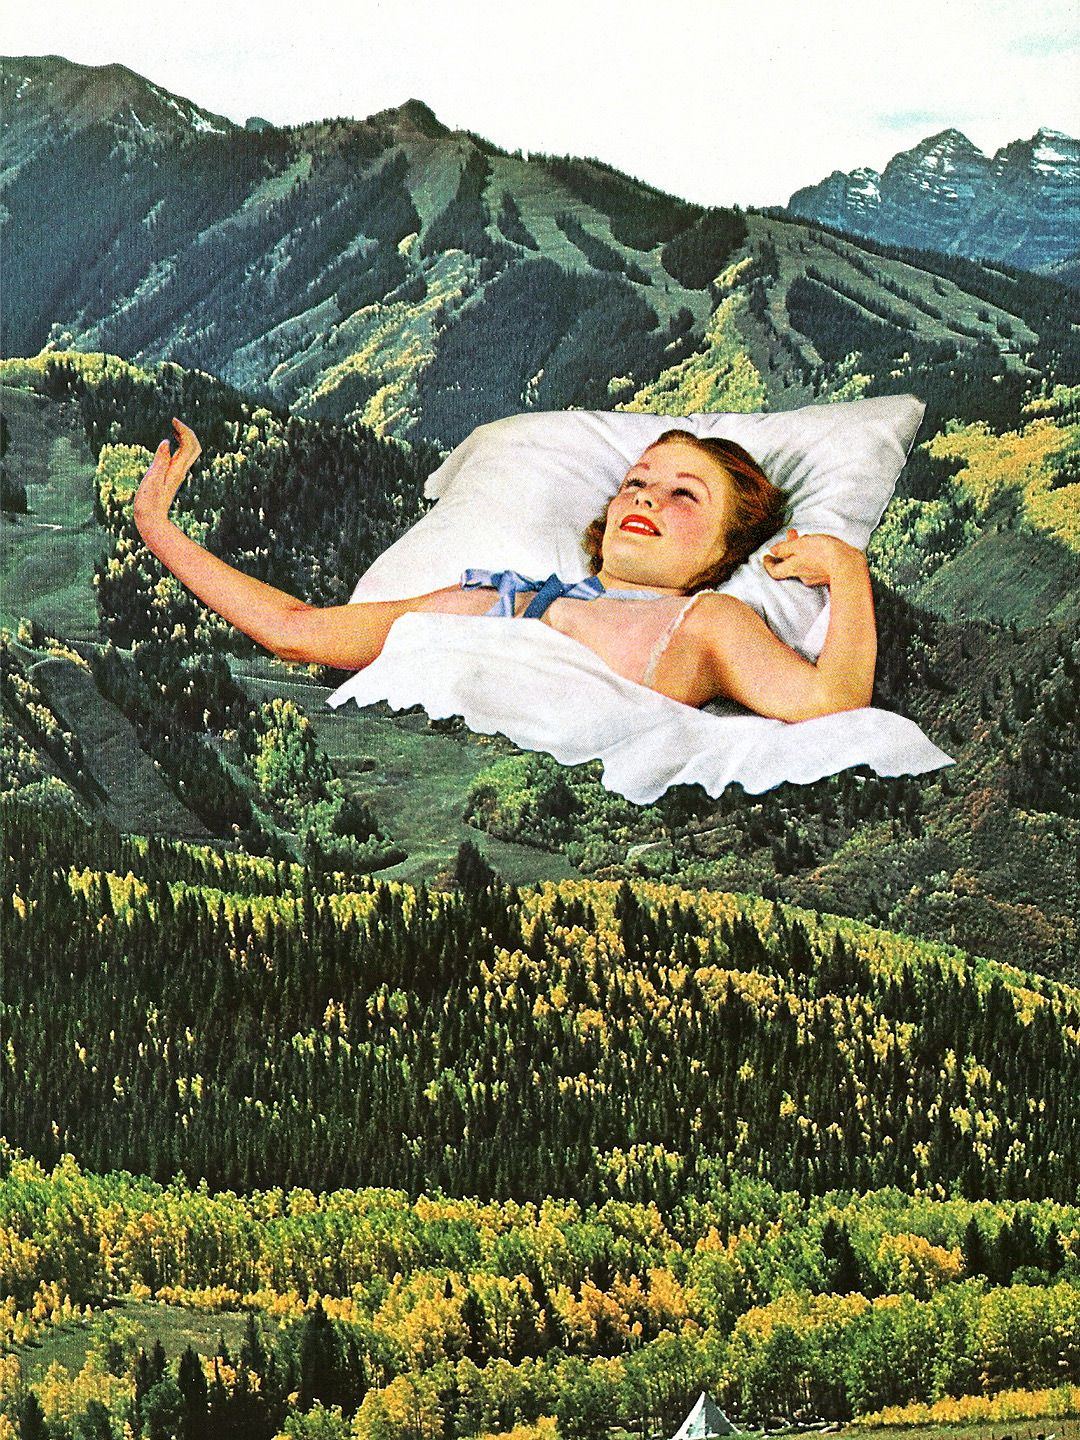 Les collages humoristiques d'Eugenia Loli | Surreal collage ...